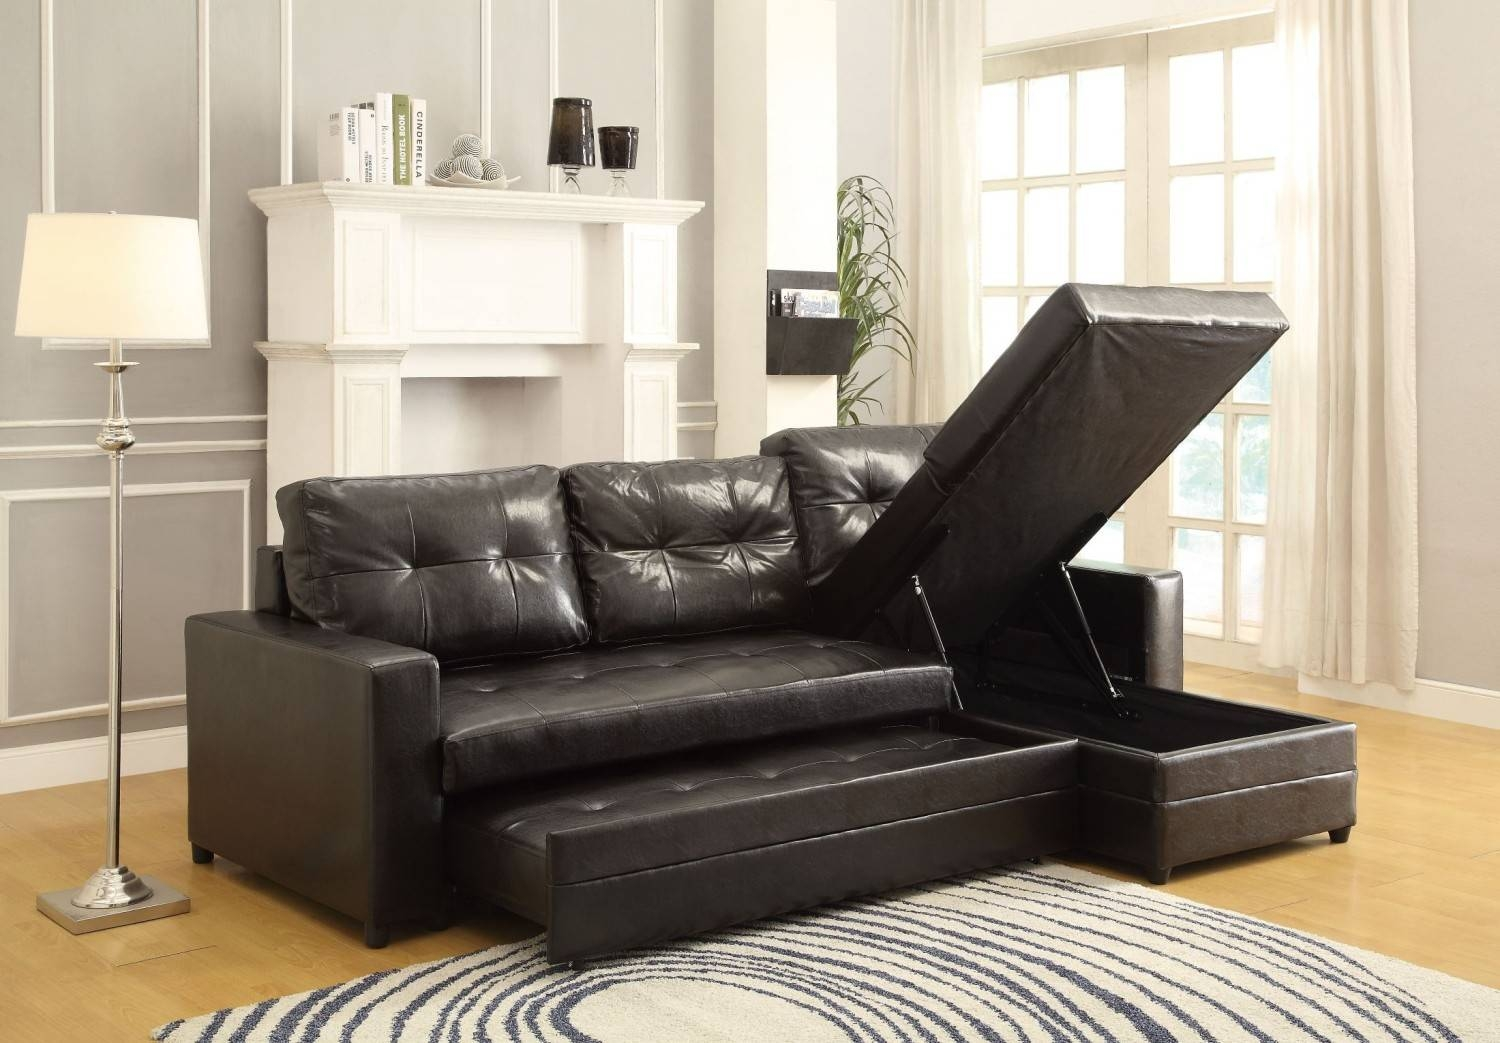 $981.00 Kemen Sectional Sofa With Pull-Up Trundle D2D Furniture Store pertaining to Sofas With Trundle (Image 1 of 15)